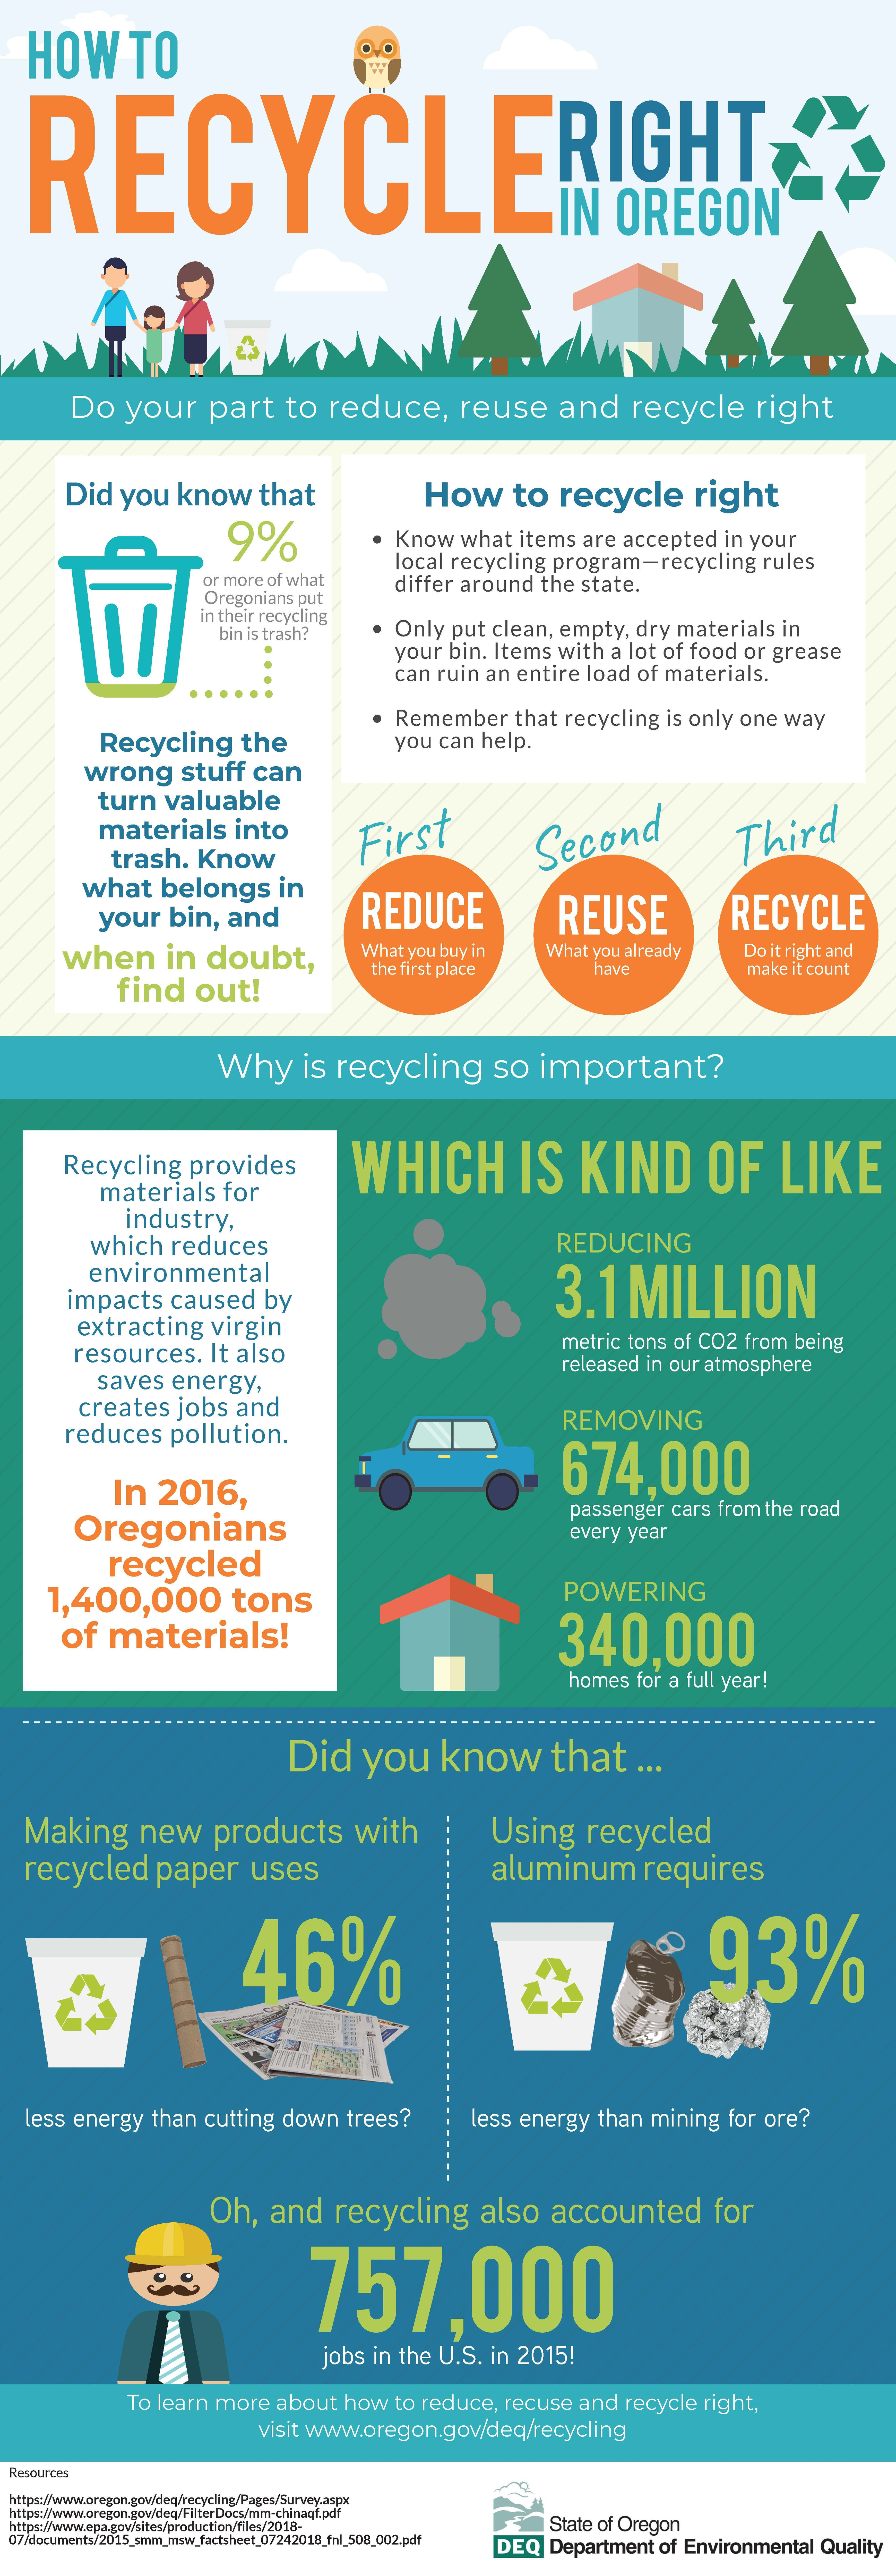 How to recycle right in Oregon, by the Oregon Department